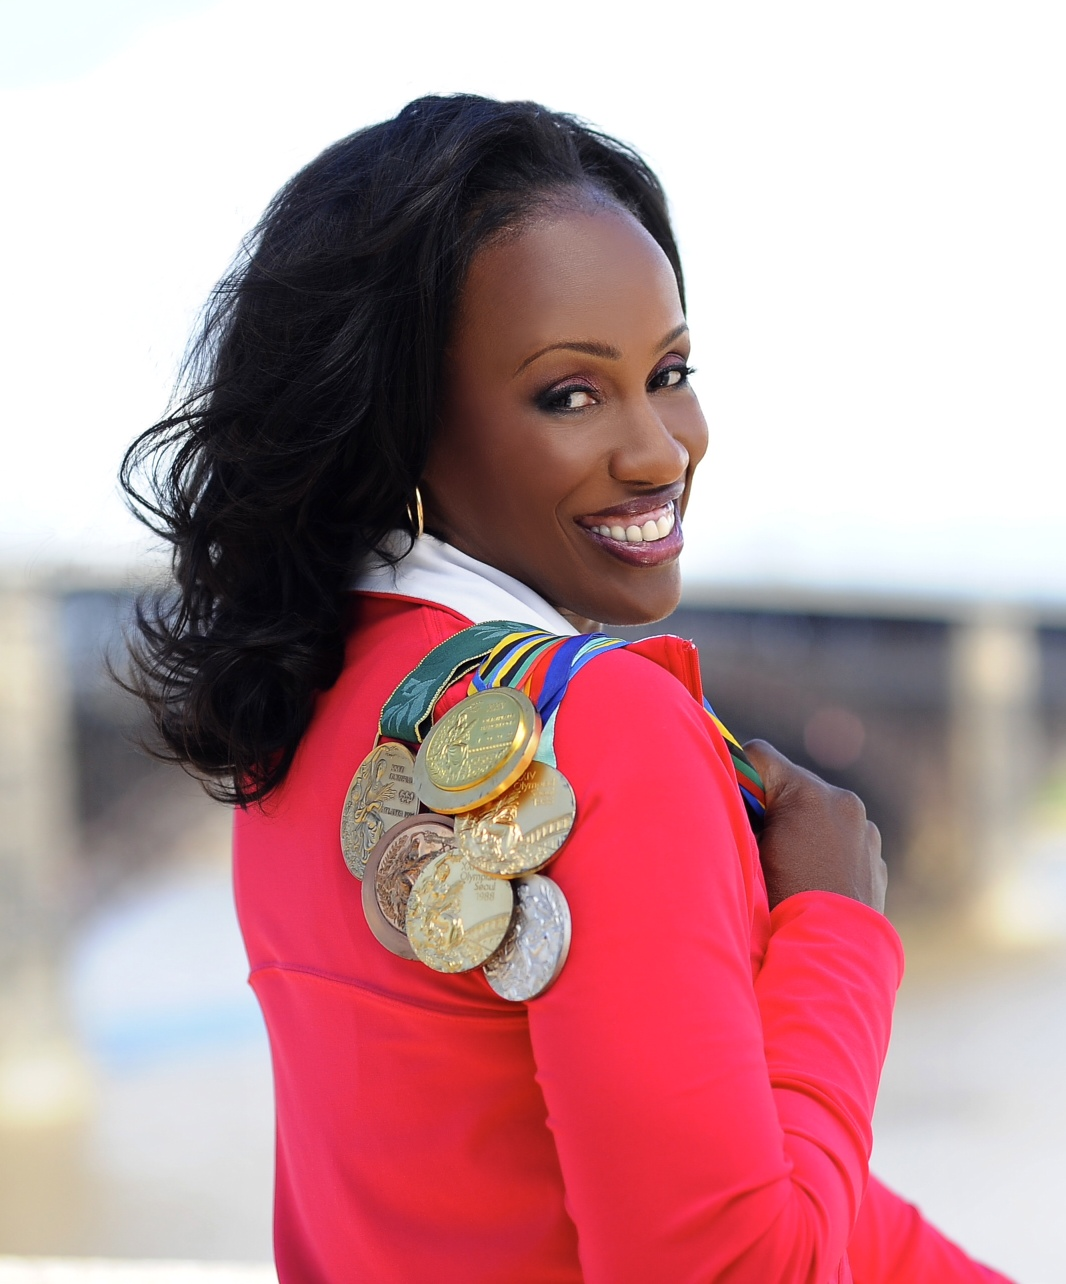 Boobs Jackie Joyner-Kersee 6 Olympic medals  nudes (36 pics), YouTube, swimsuit